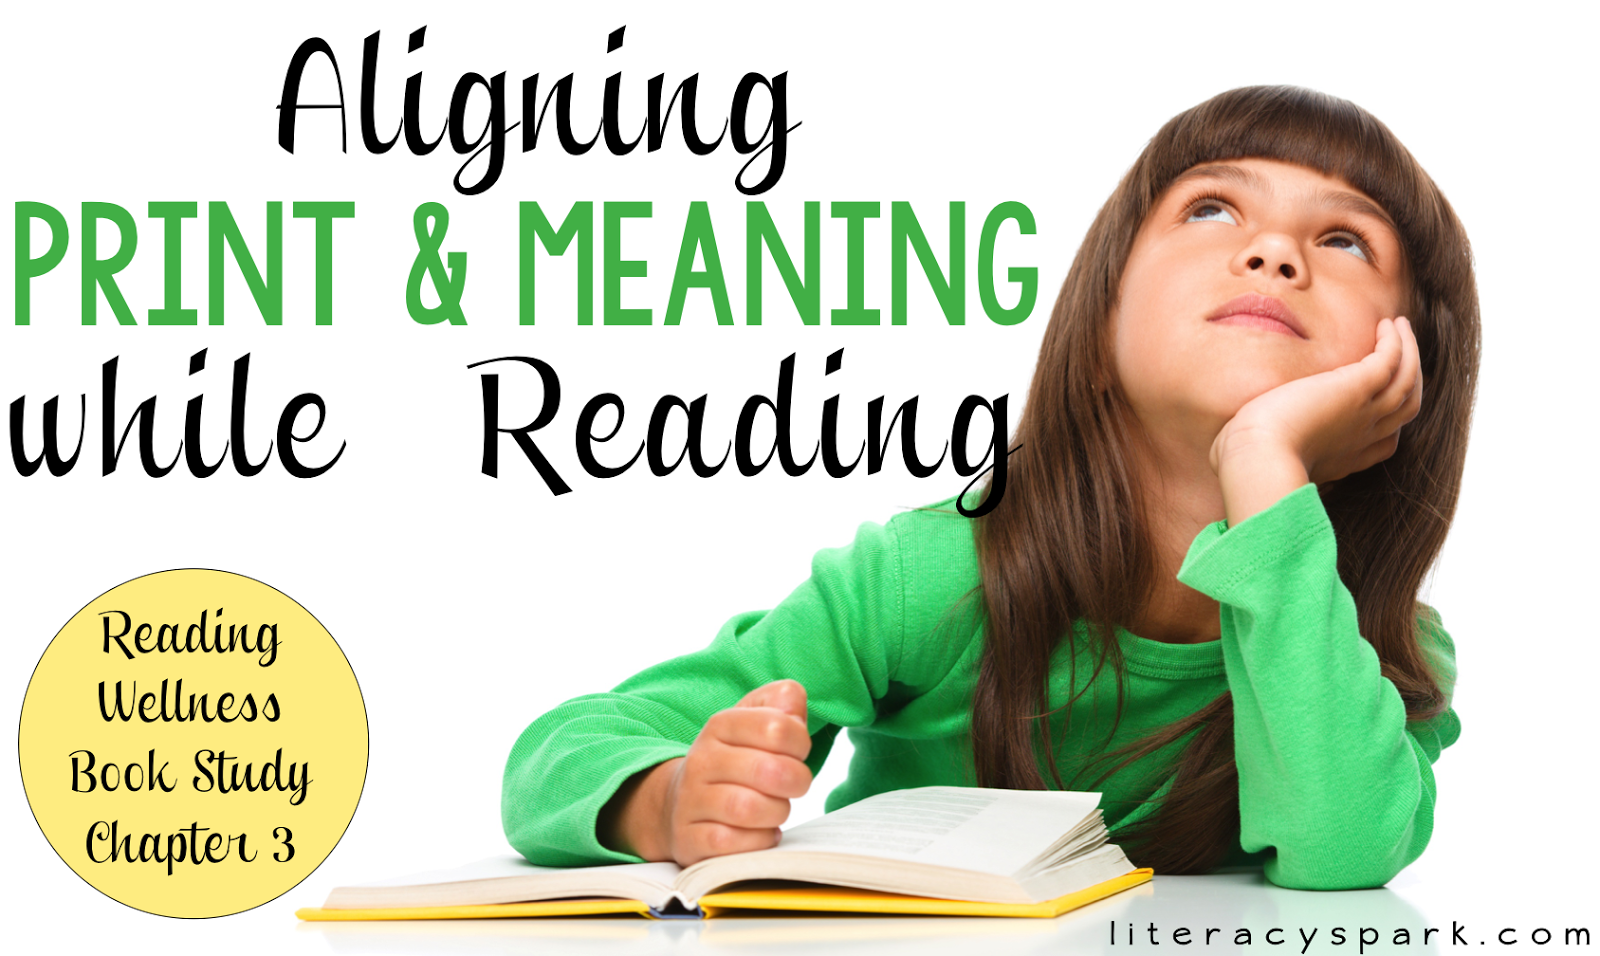 Aligning Print And Meaning While Reading